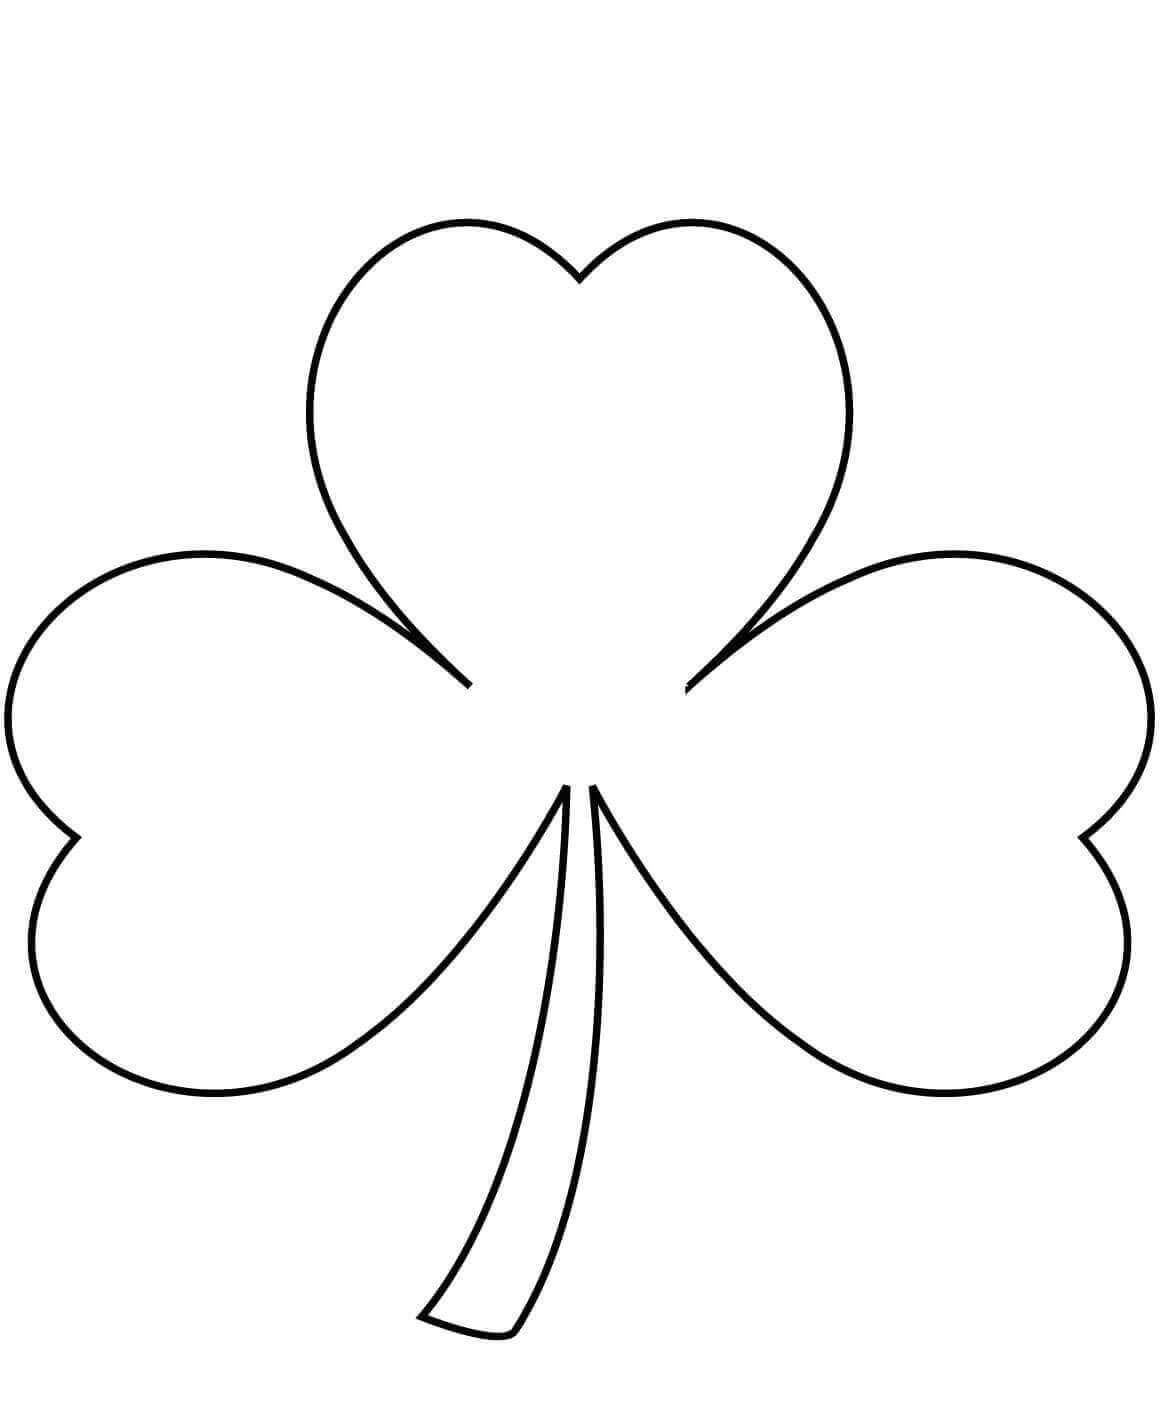 Simple Shamrock Coloring Page For Kids